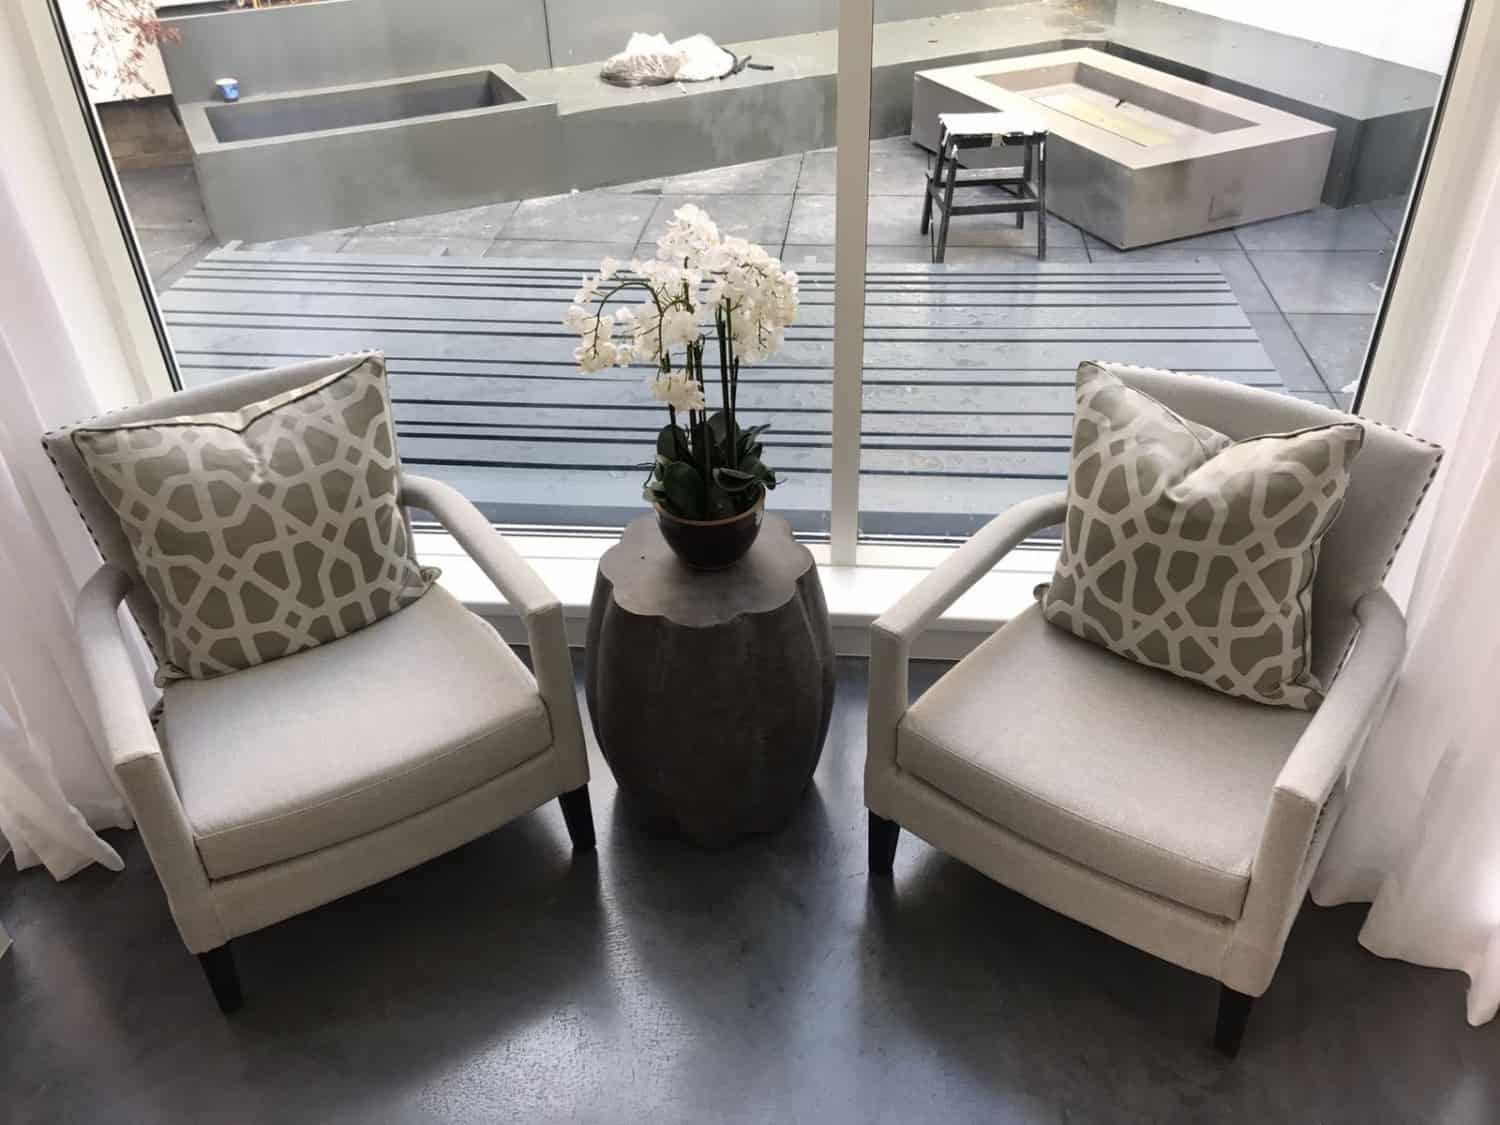 Dark polished concrete floor with two chairs